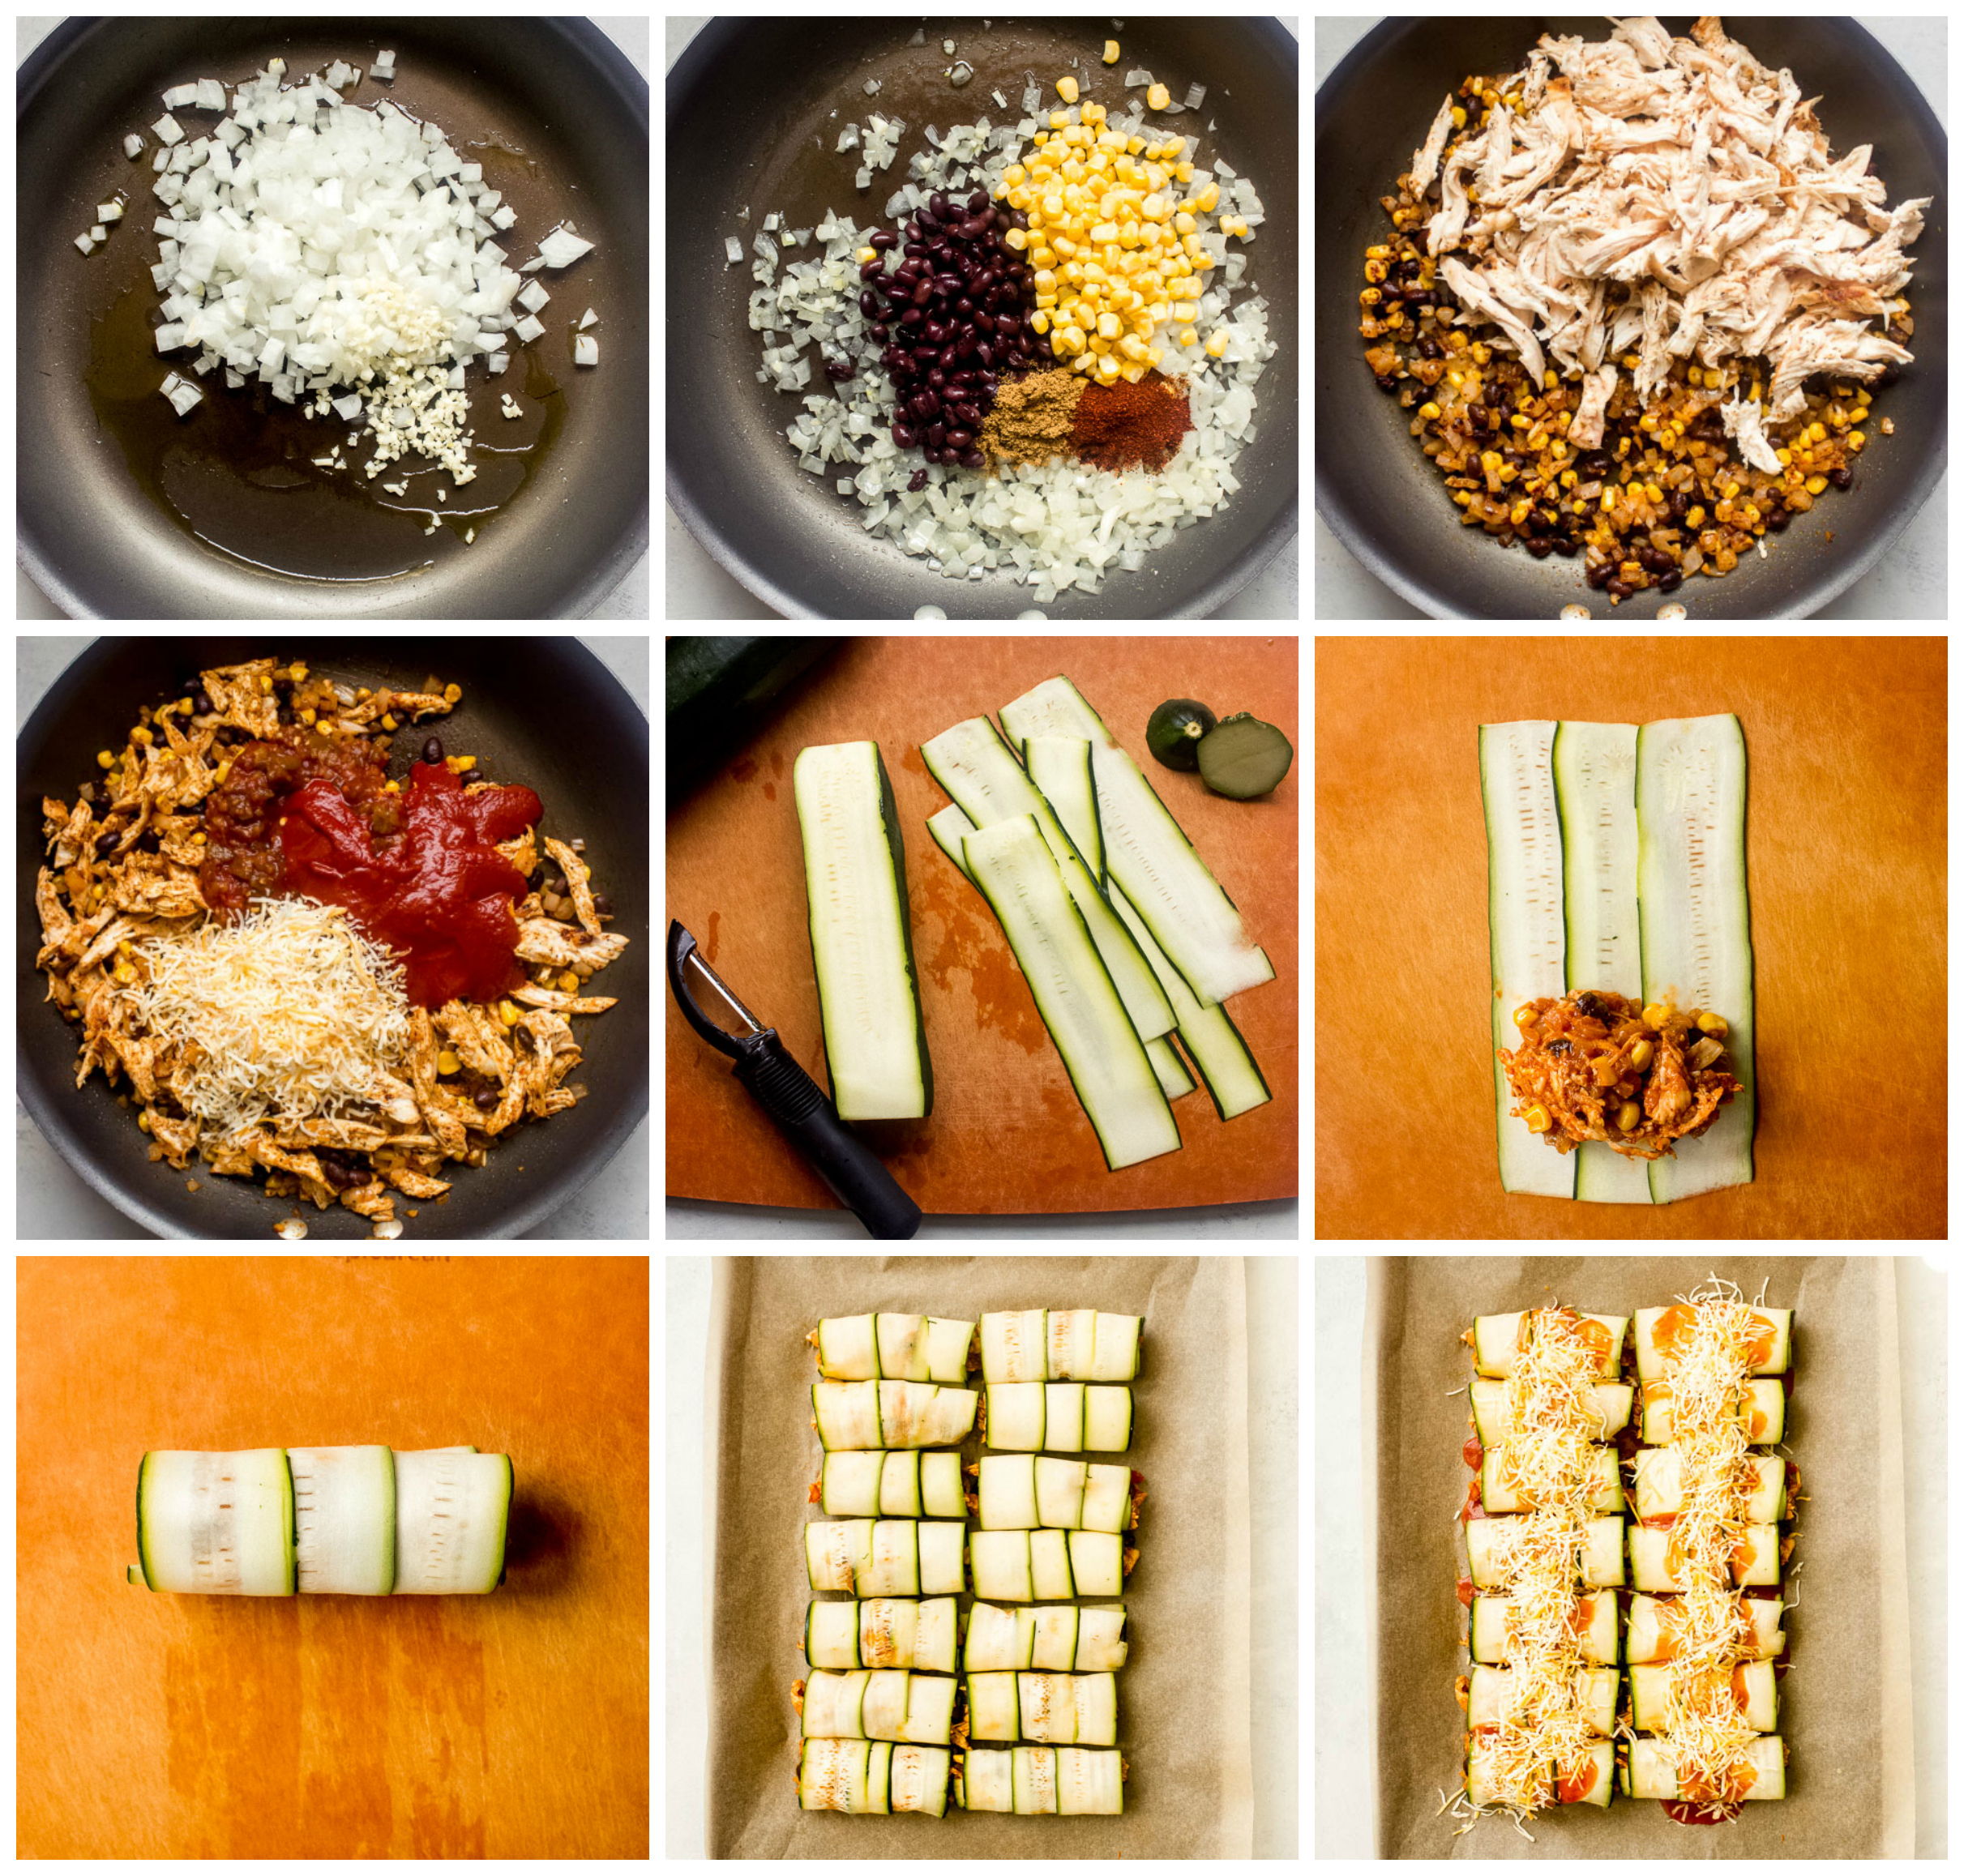 Step by step instructions for zucchini enchiladas